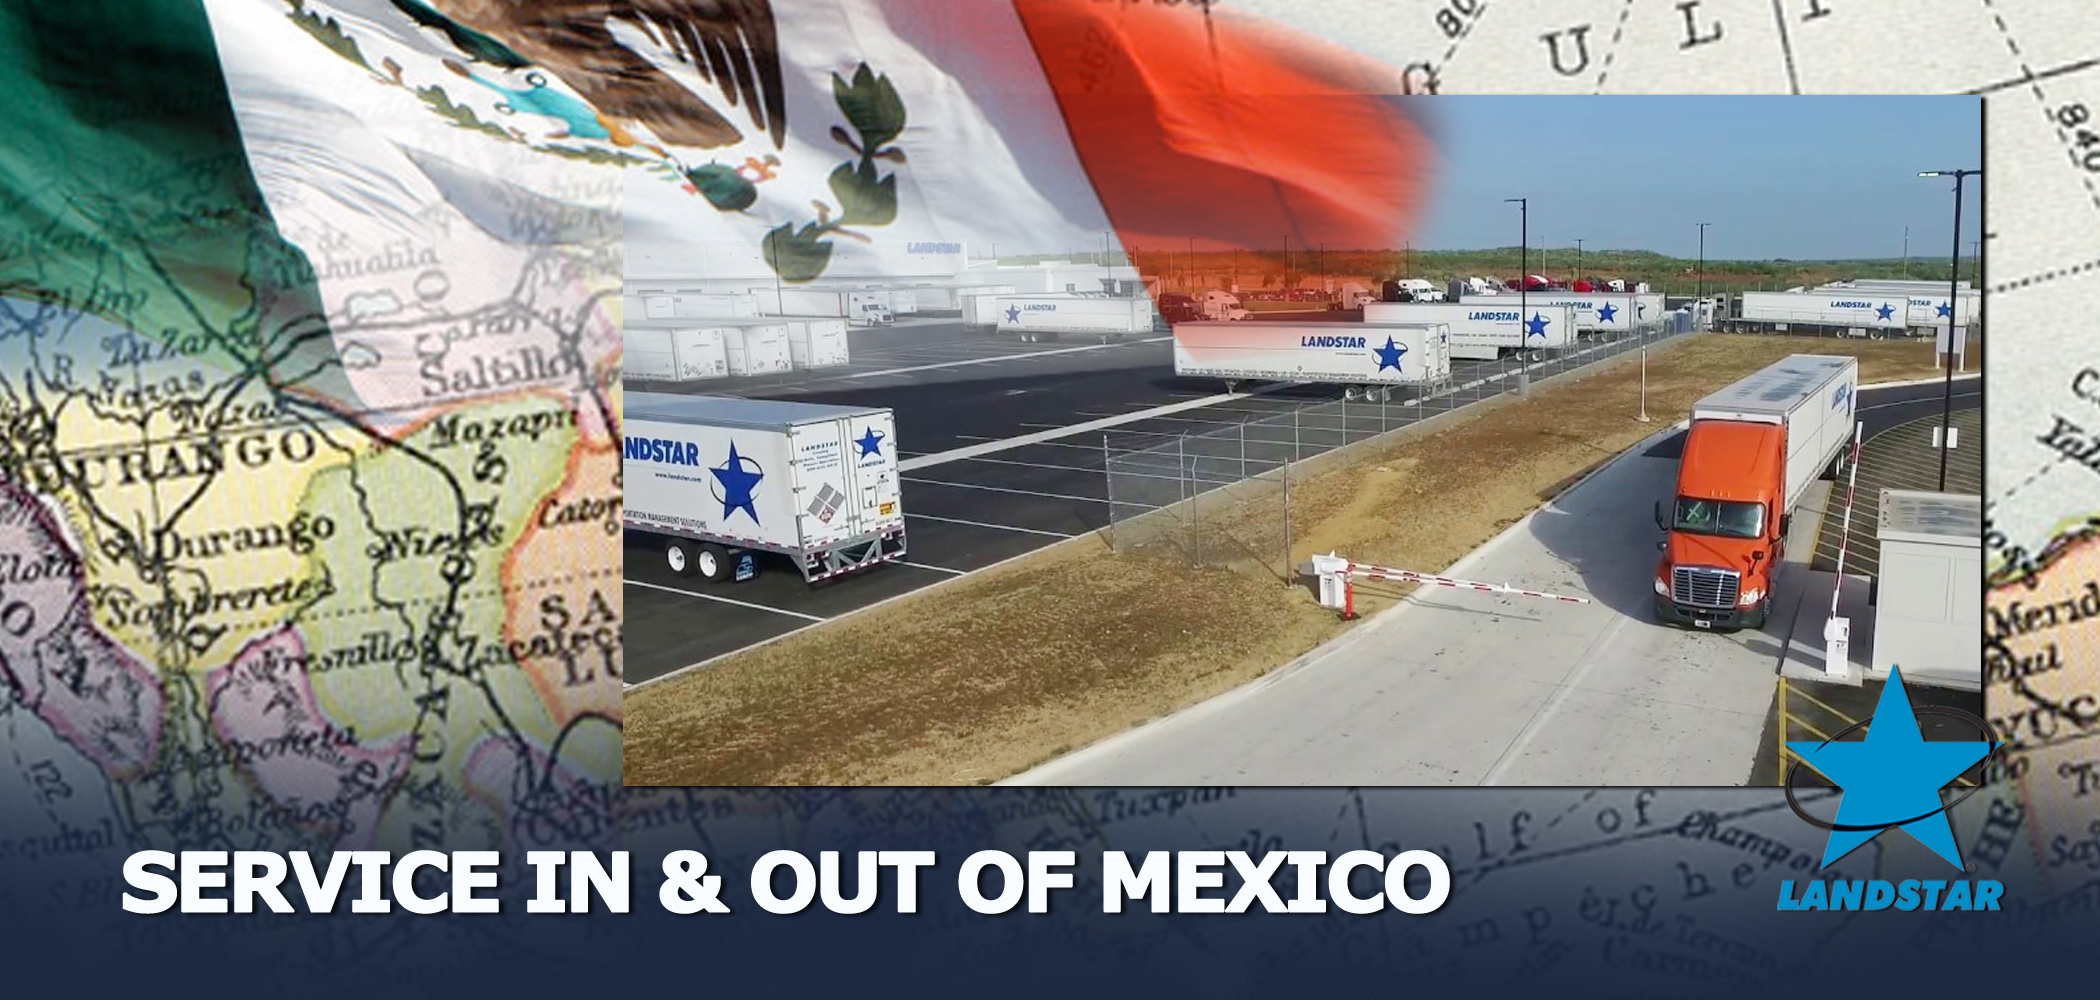 a3-slide-service-in-and-out-of-mexico.jpg